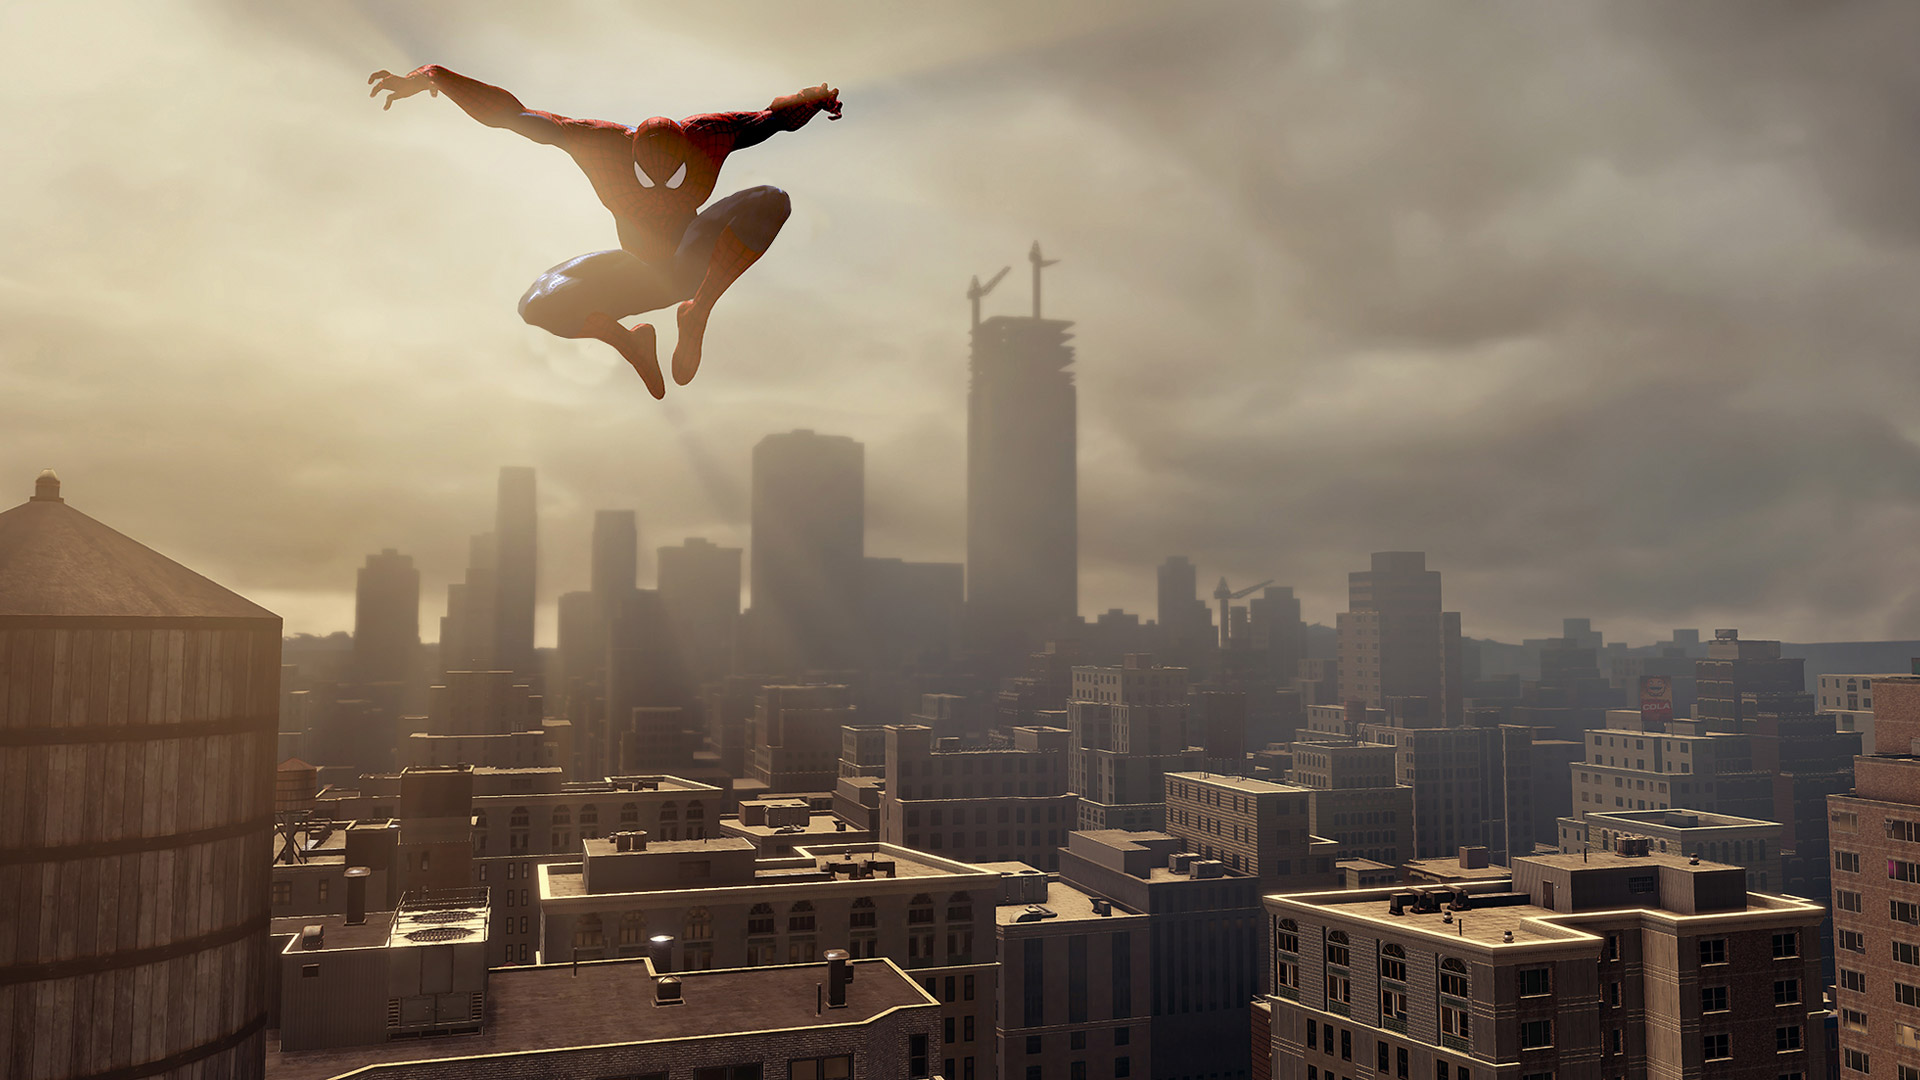 Free The Amazing Spider-Man 2 Wallpaper in 1920x1080